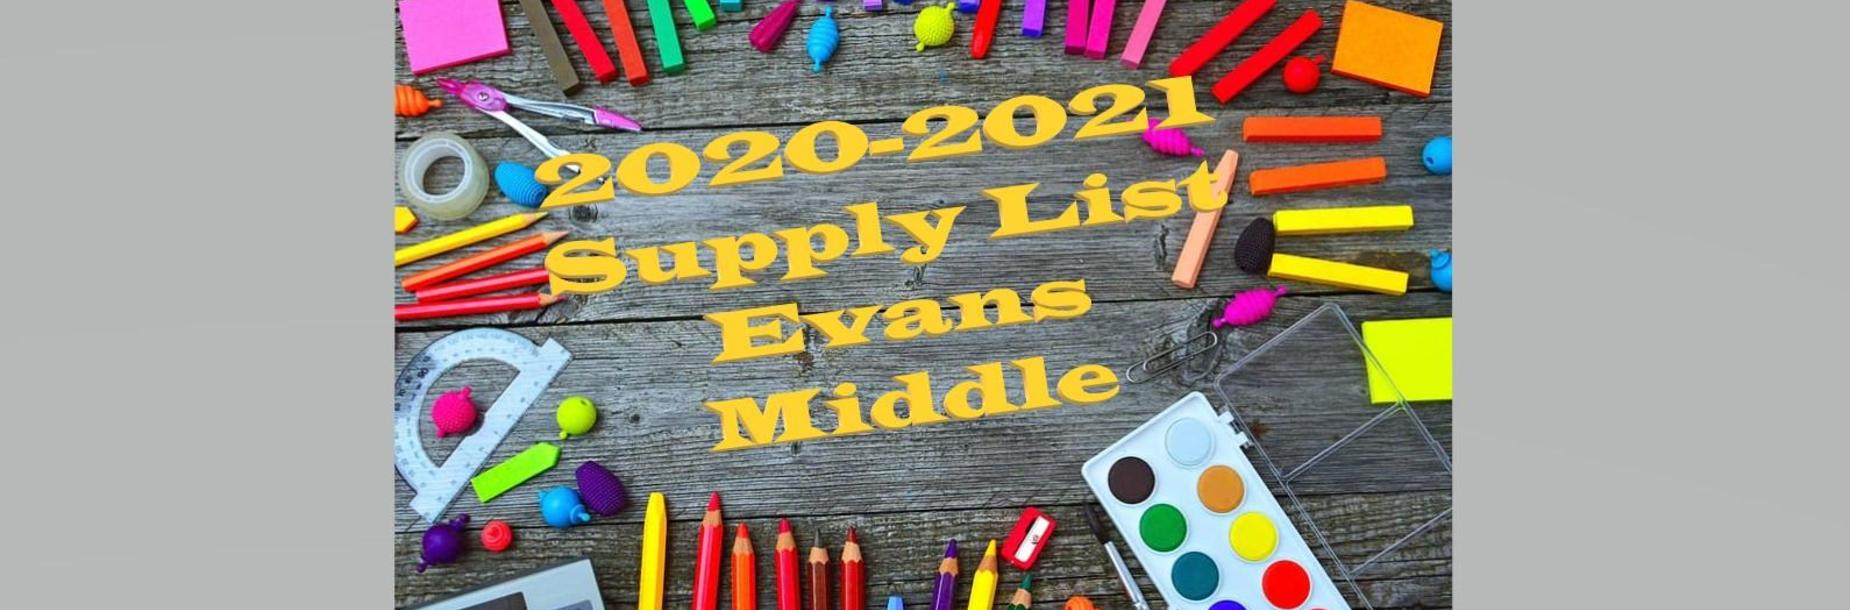 evans middle student school supply list